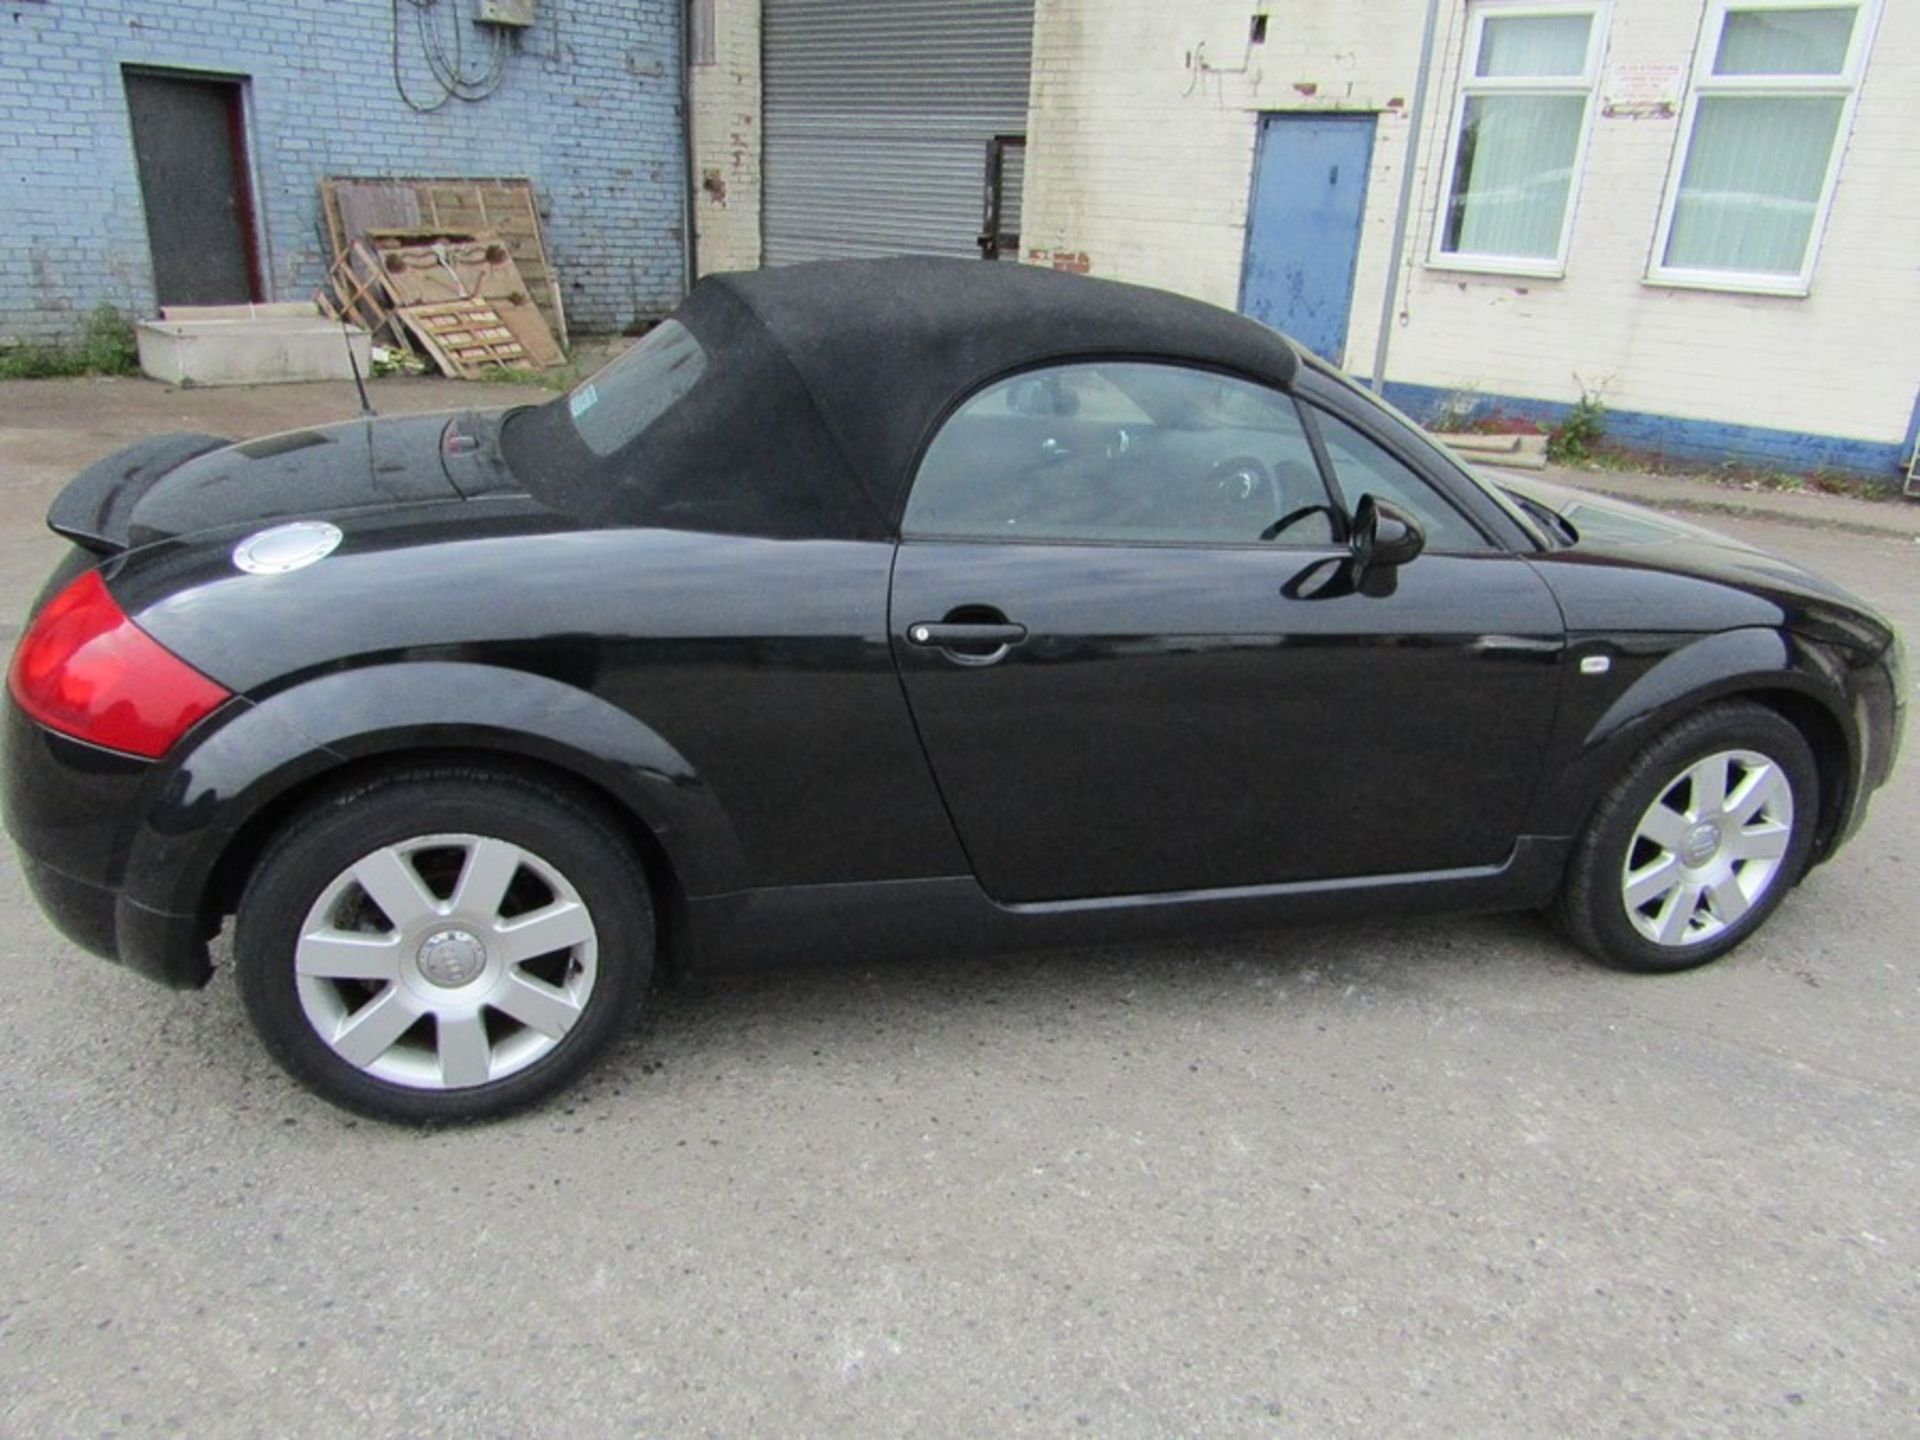 2005 Audi 1.8i Convertible roadster, 131,608 Miles (unchecked) MOT until 01/06/2021, Has part - Image 2 of 16